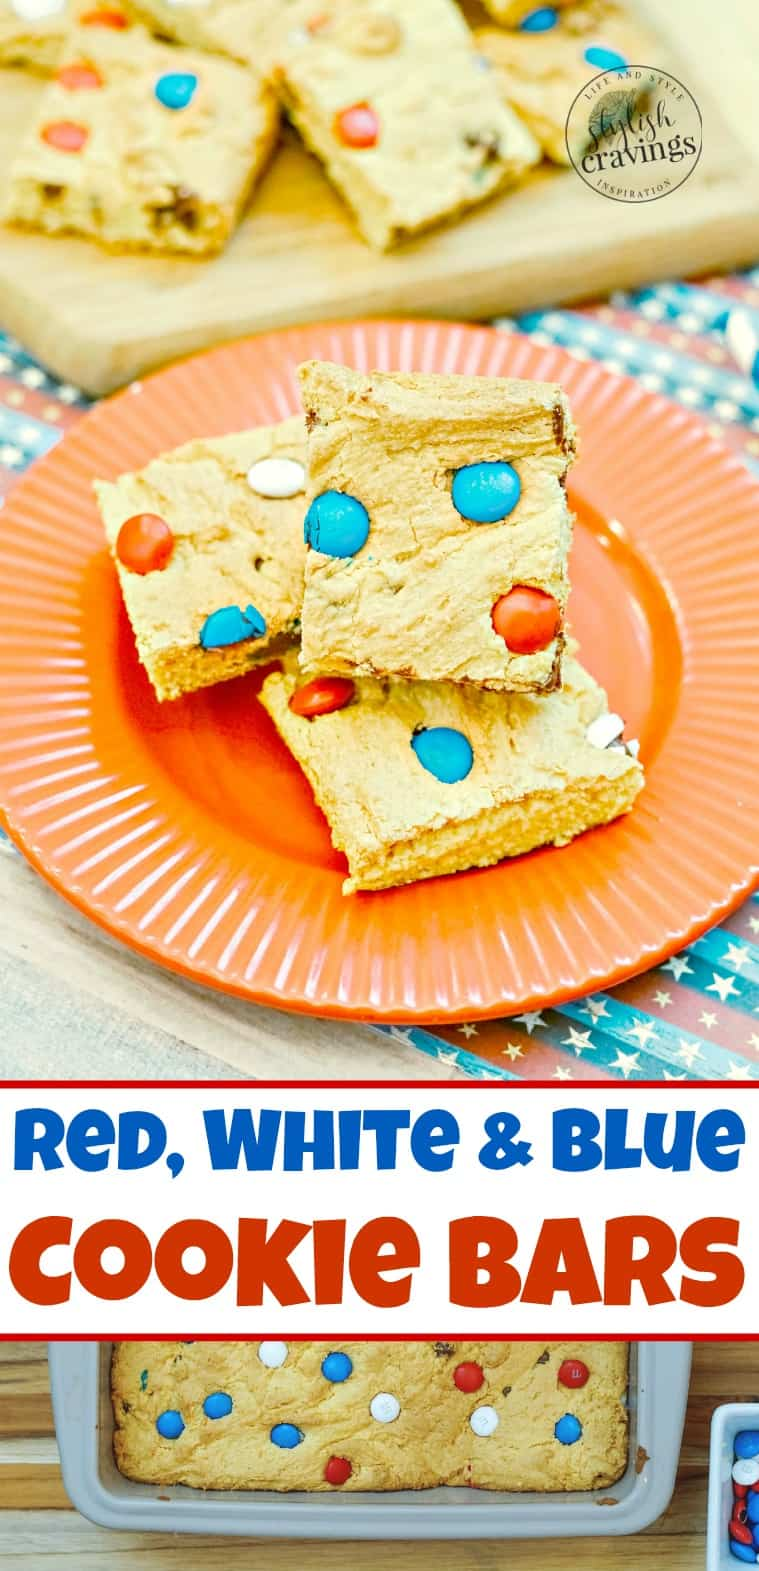 Red, White & Blue Cookie